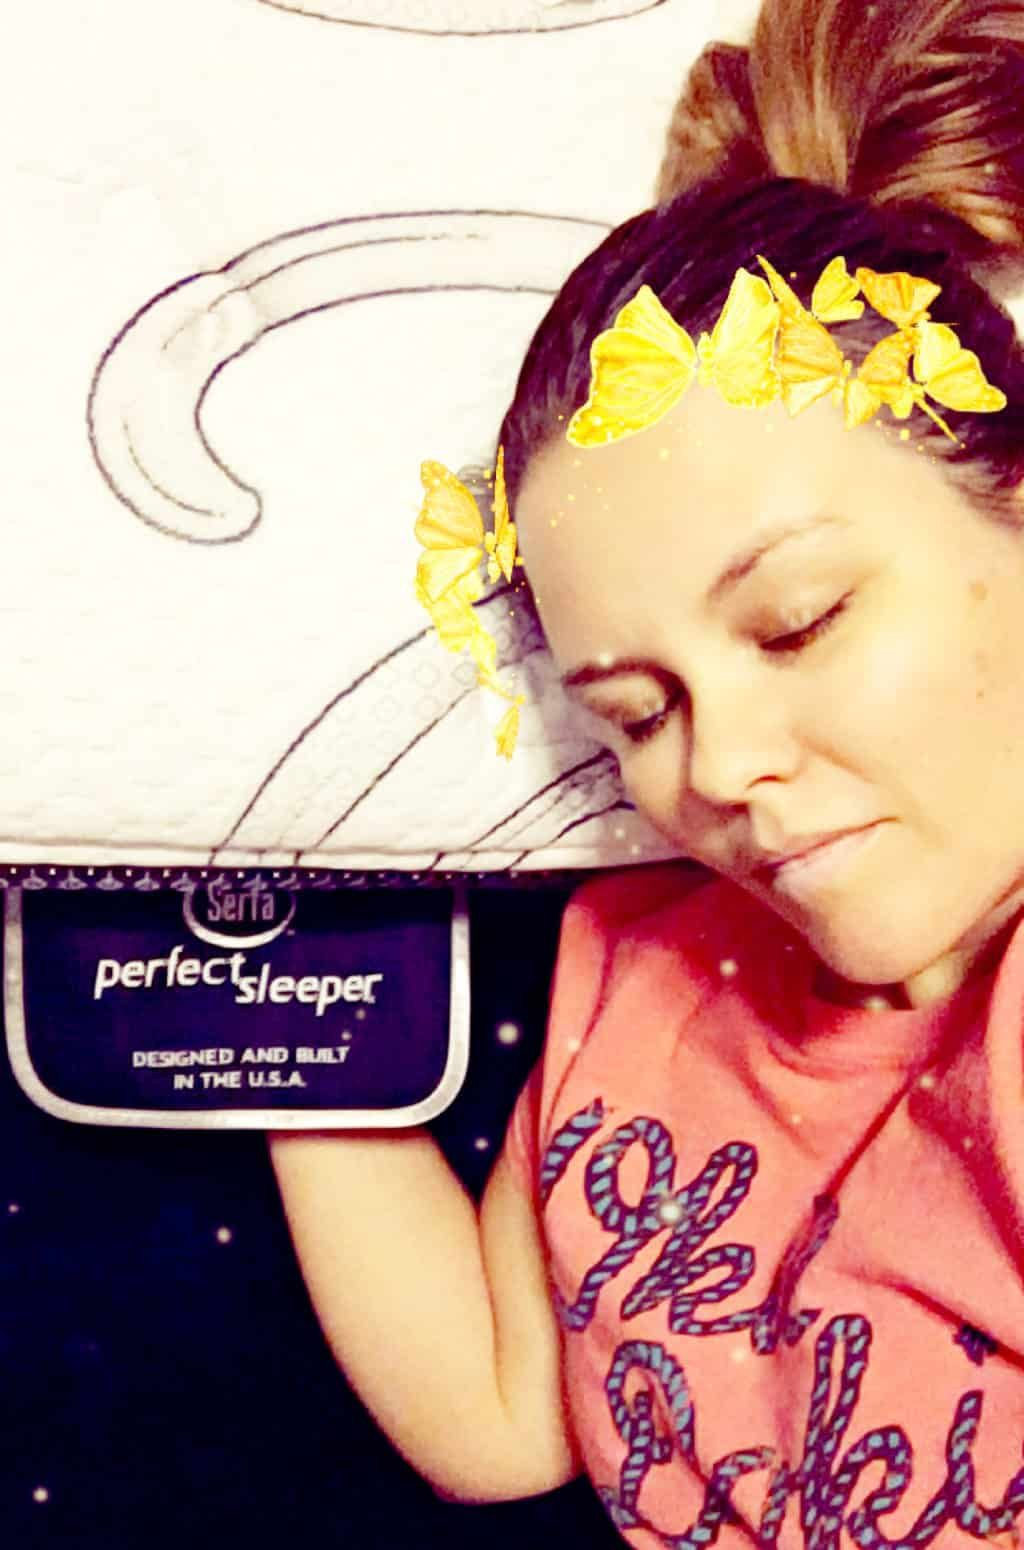 Serta Perfect Sleeper Selfie